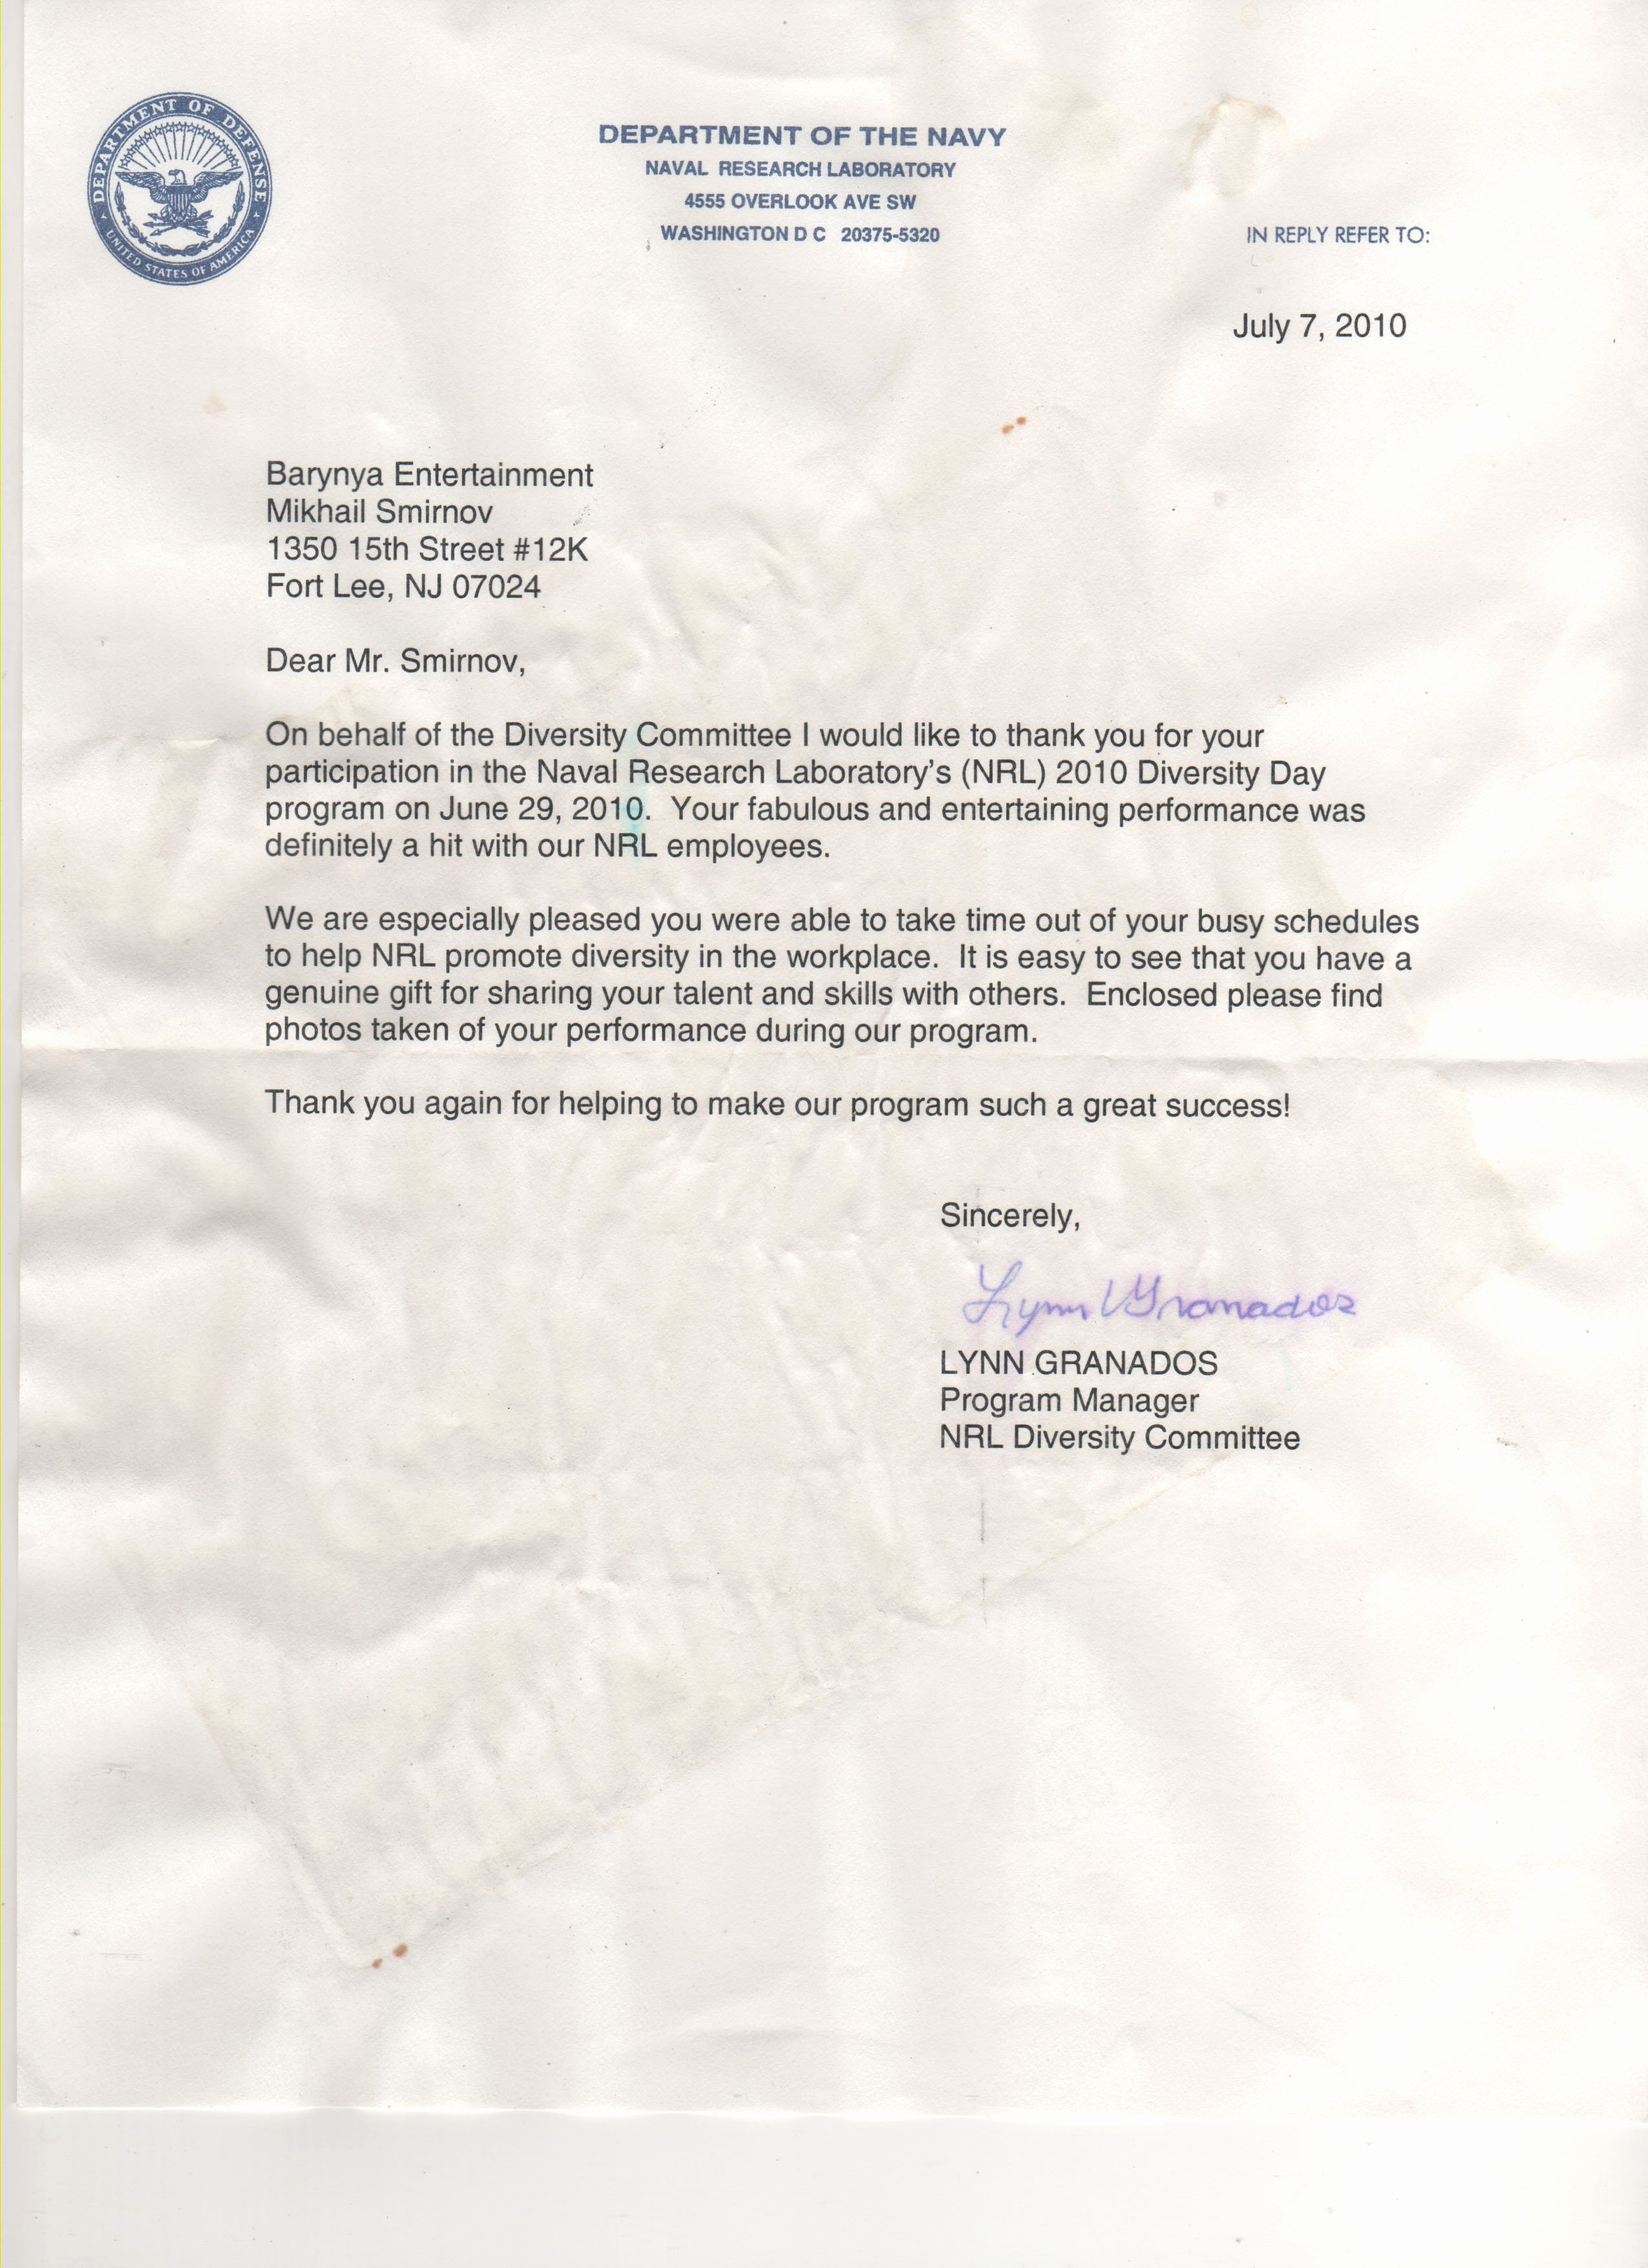 Naval Academy Recommendation Letter New Re Mendation Letters for Barynya